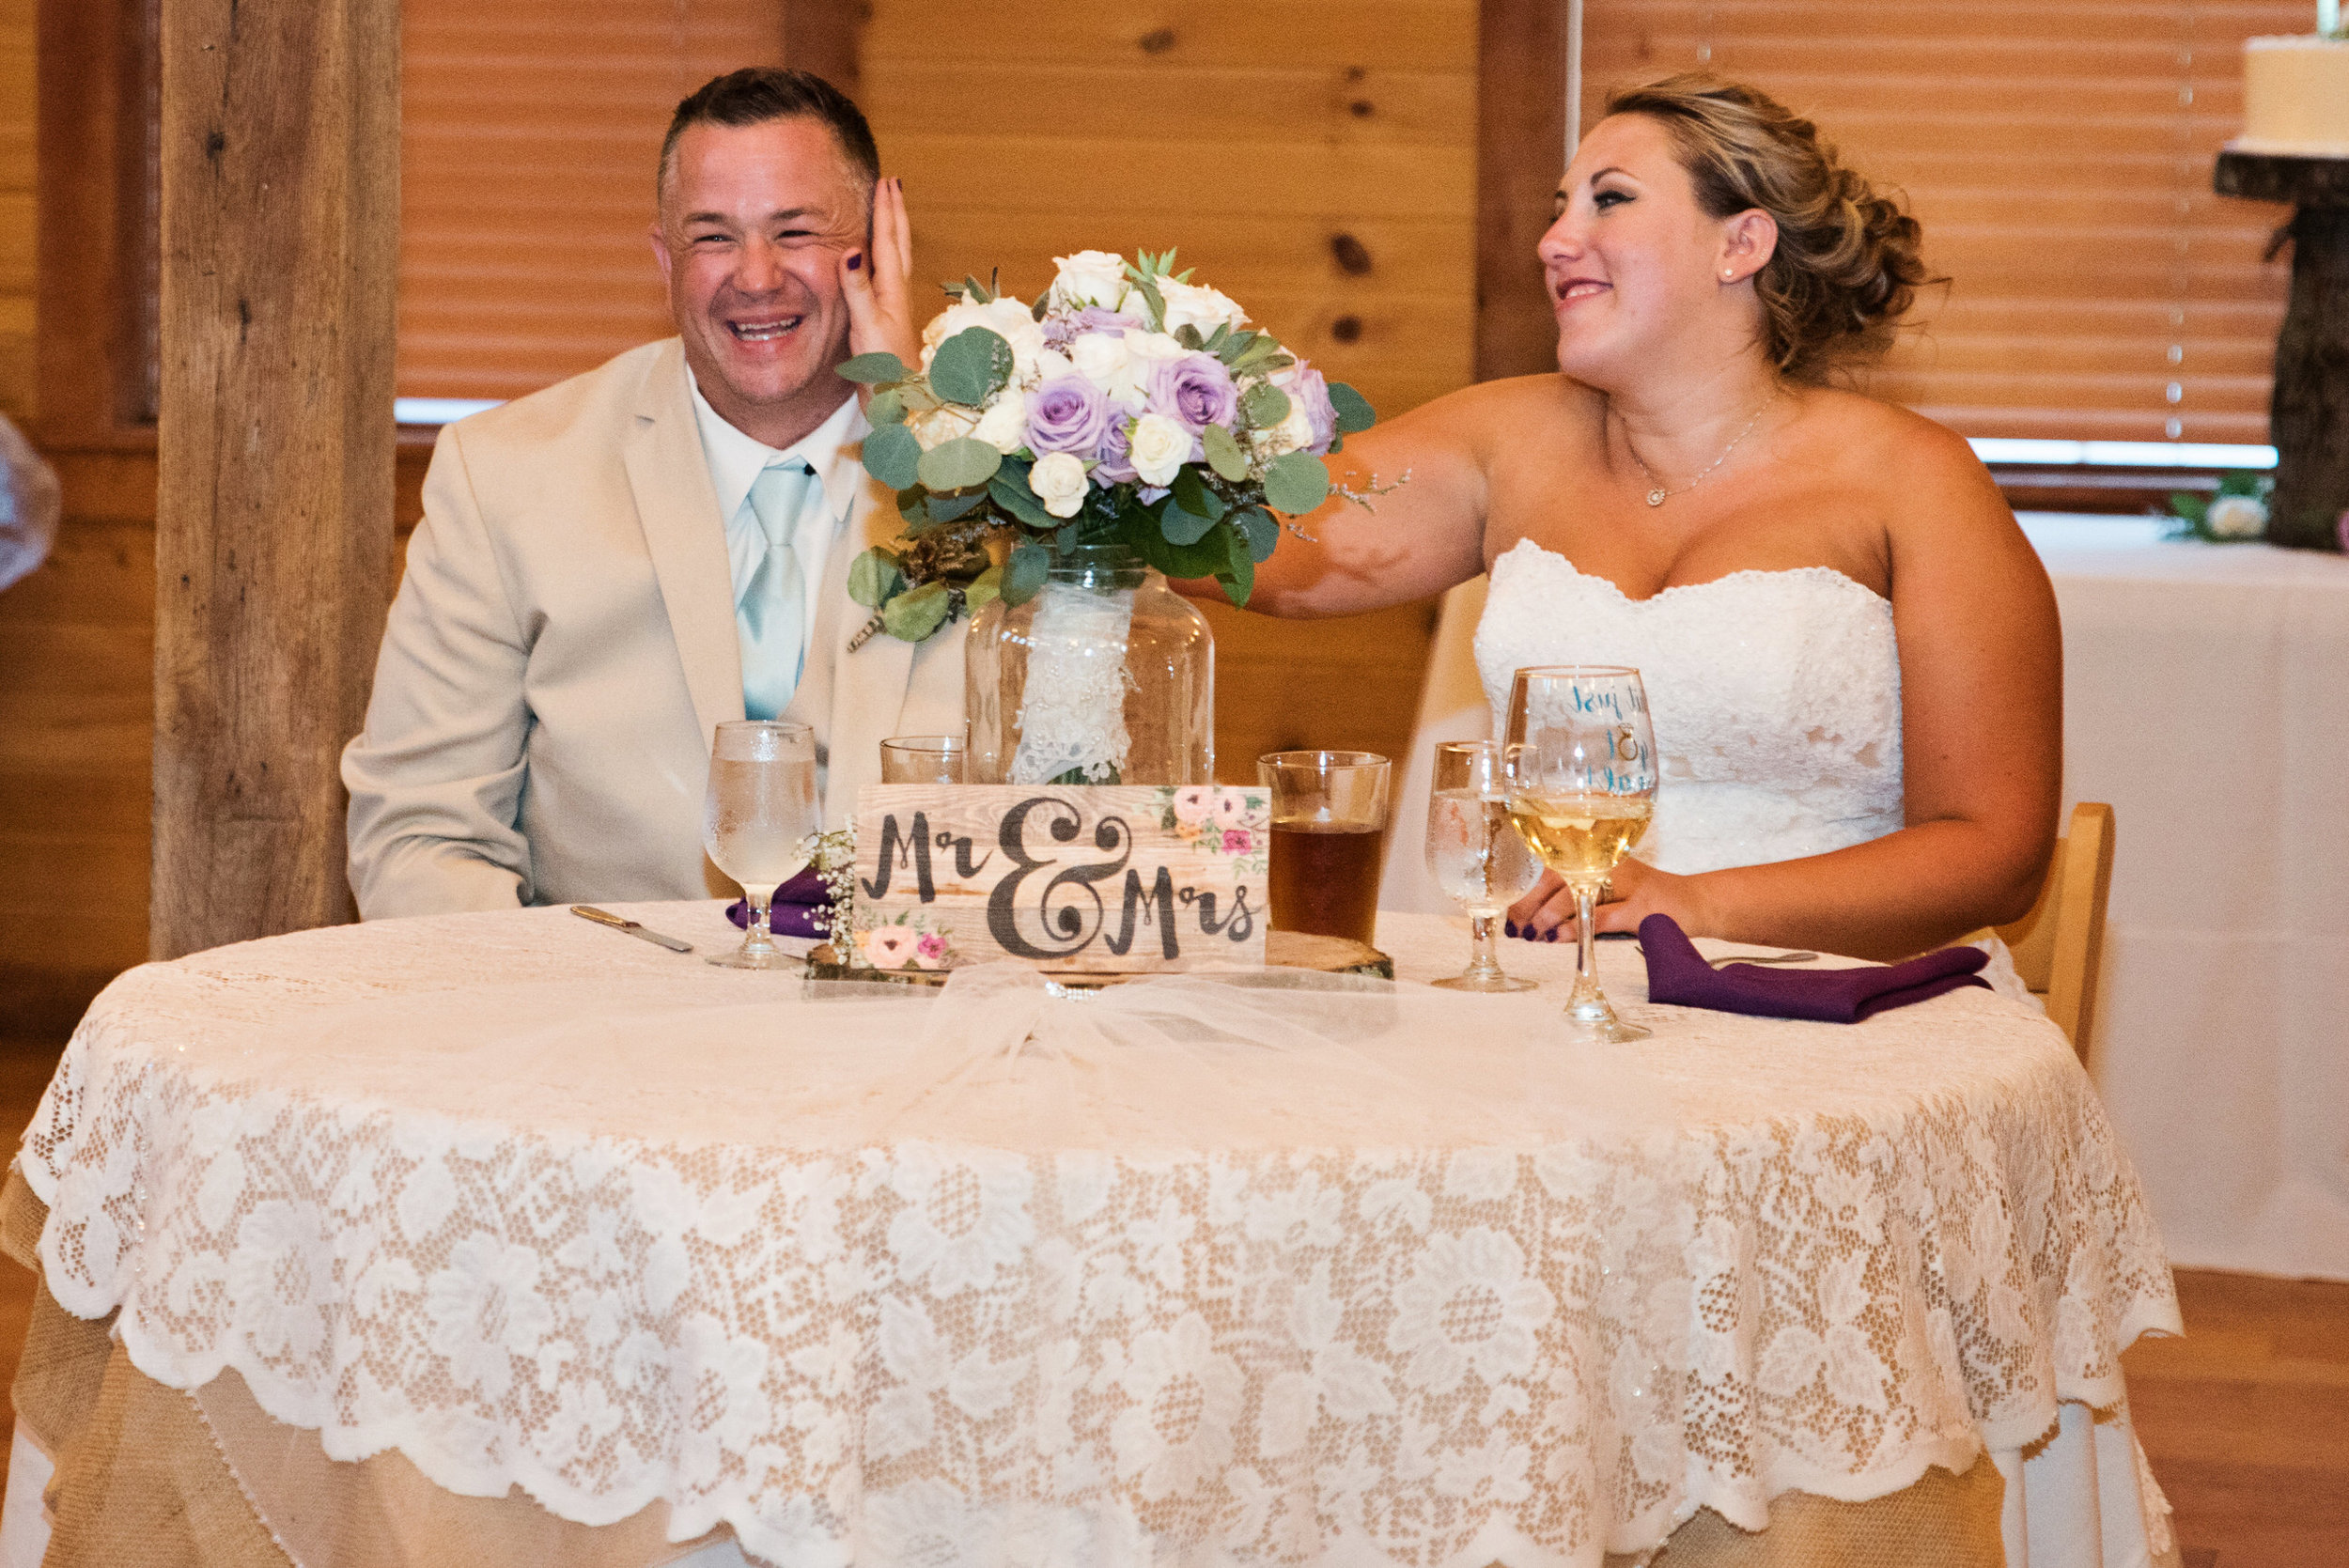 LiganoreWineryWedding-Amber&Andy-Reception-93.jpg